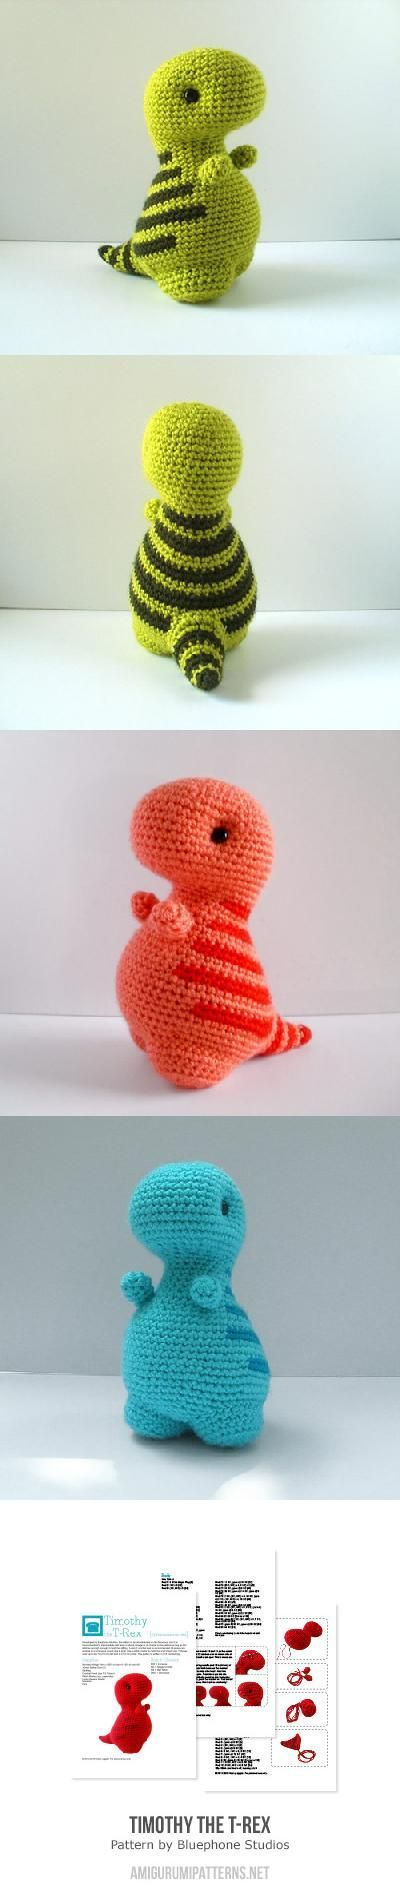 timothy the t-rex amigurumi pattern